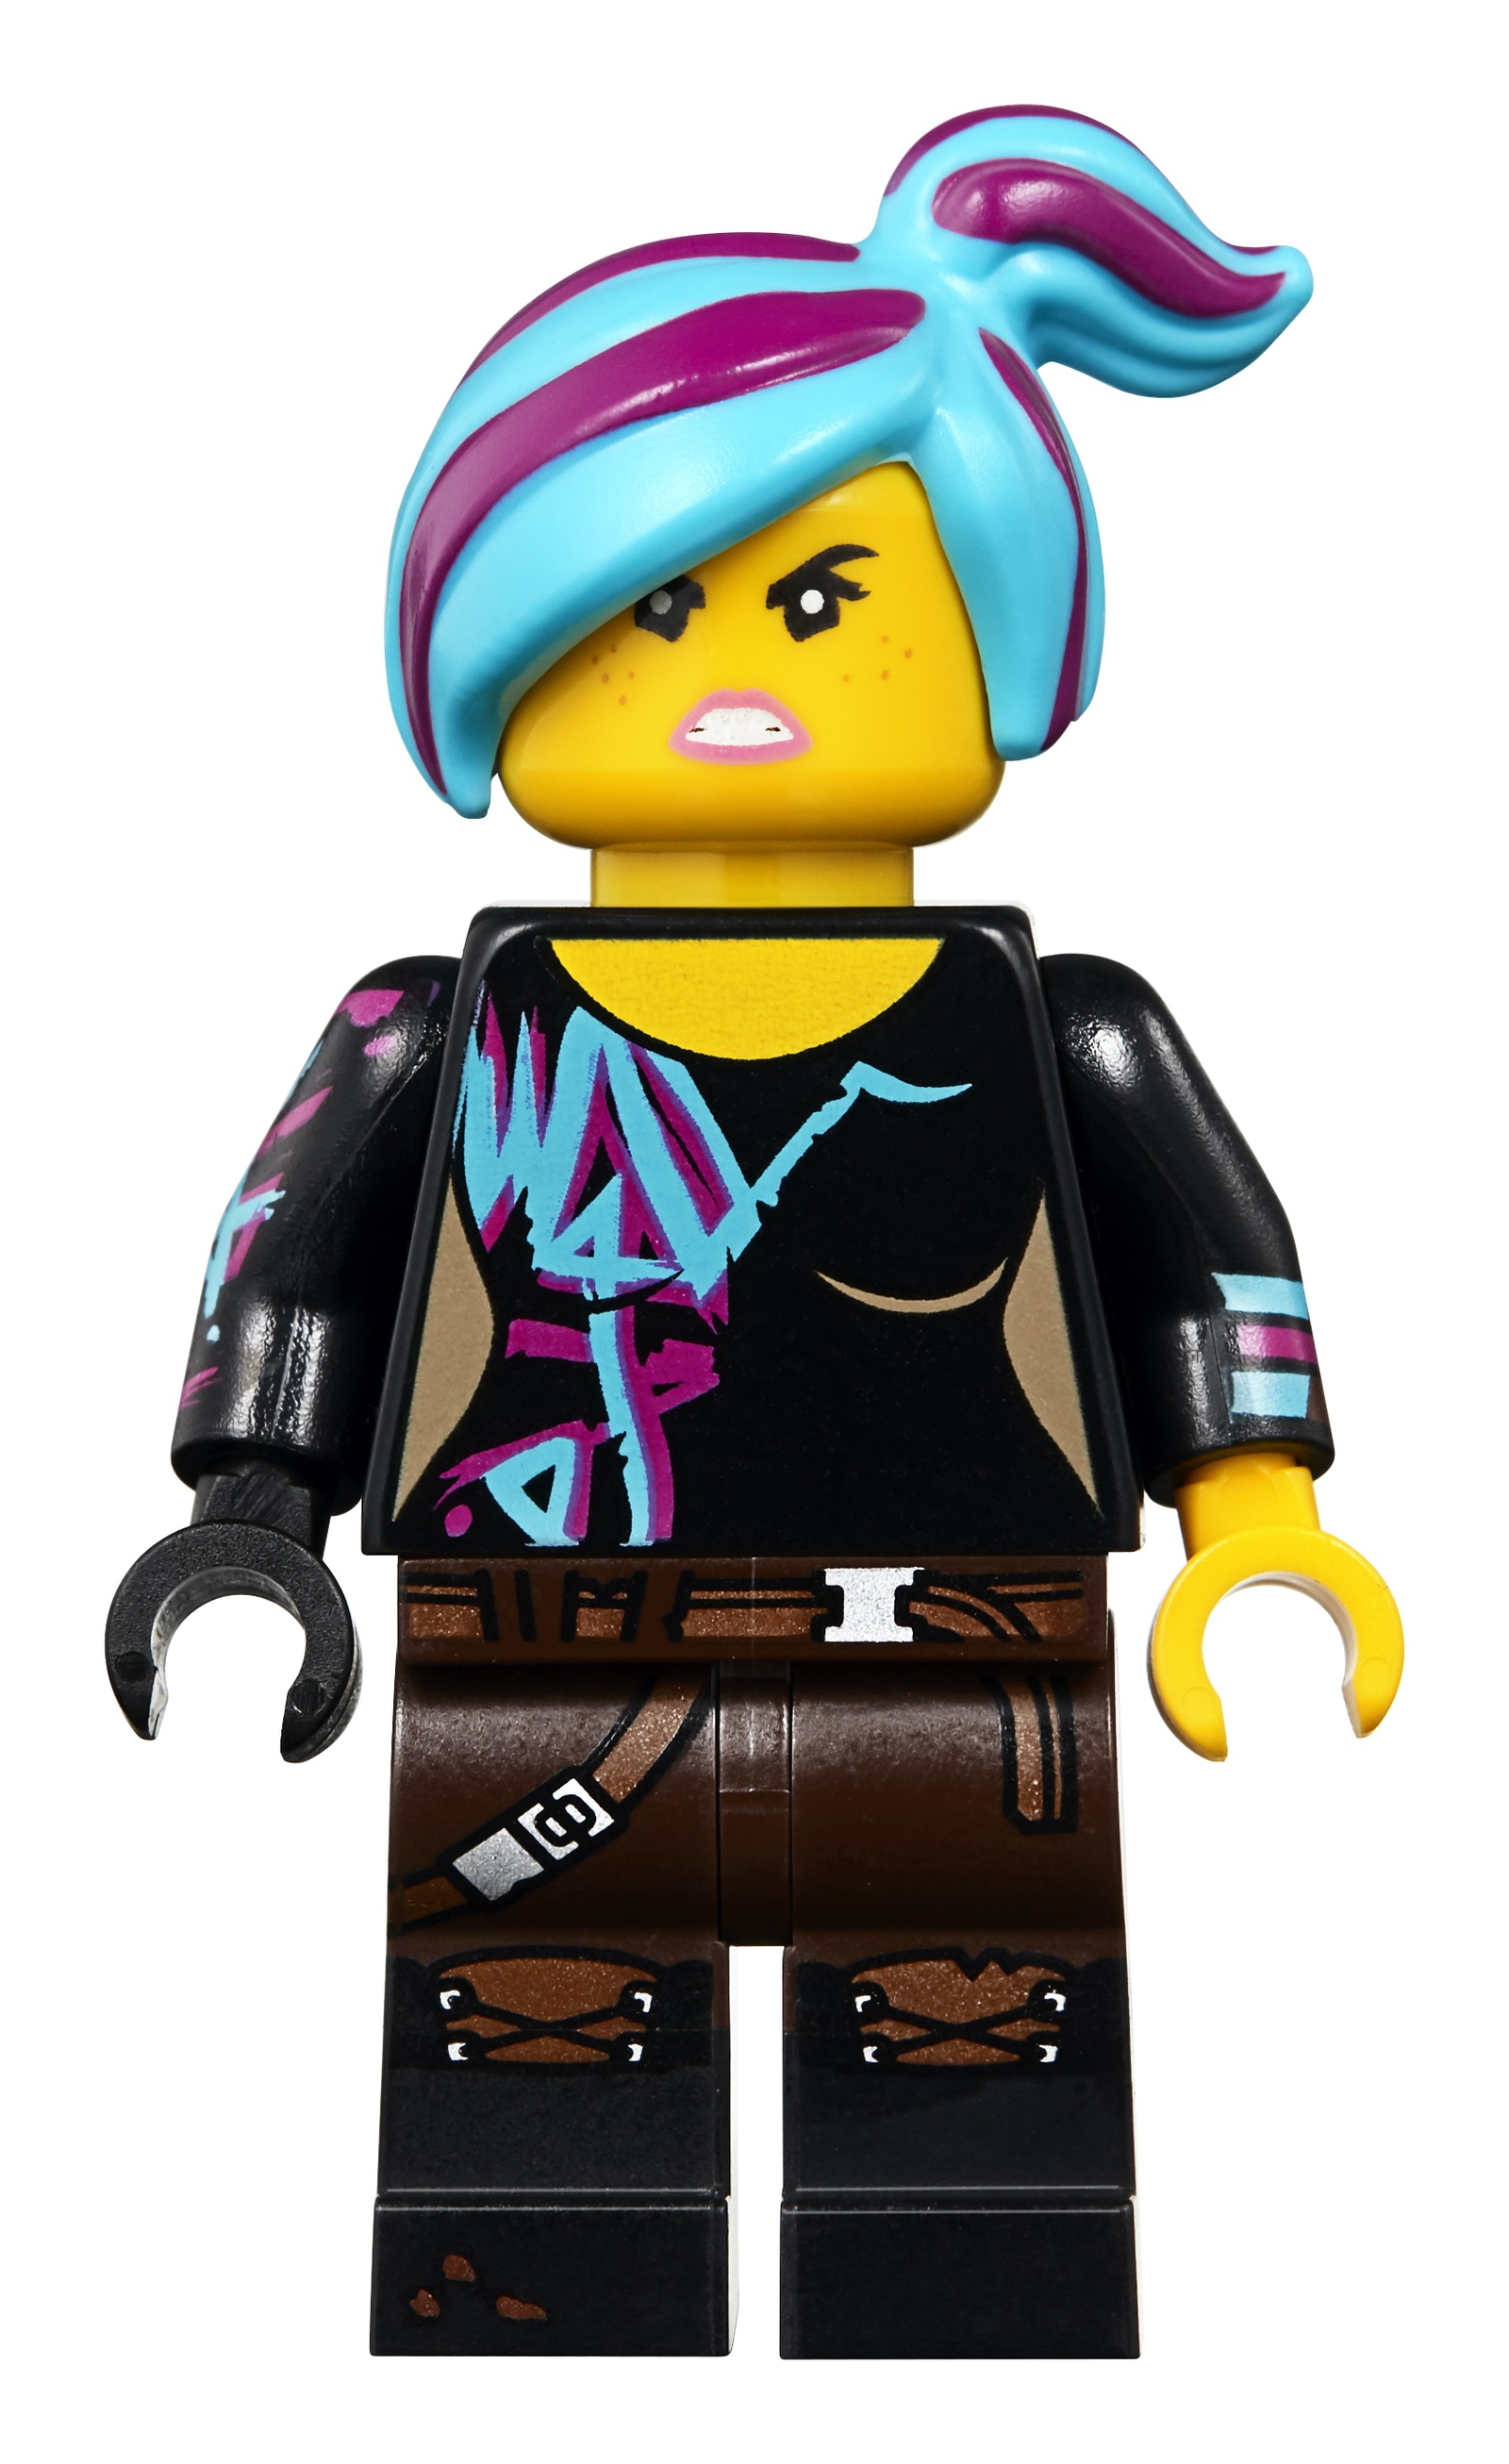 LEGO adds three more LEGO Movie 2 sets   The Nerdy